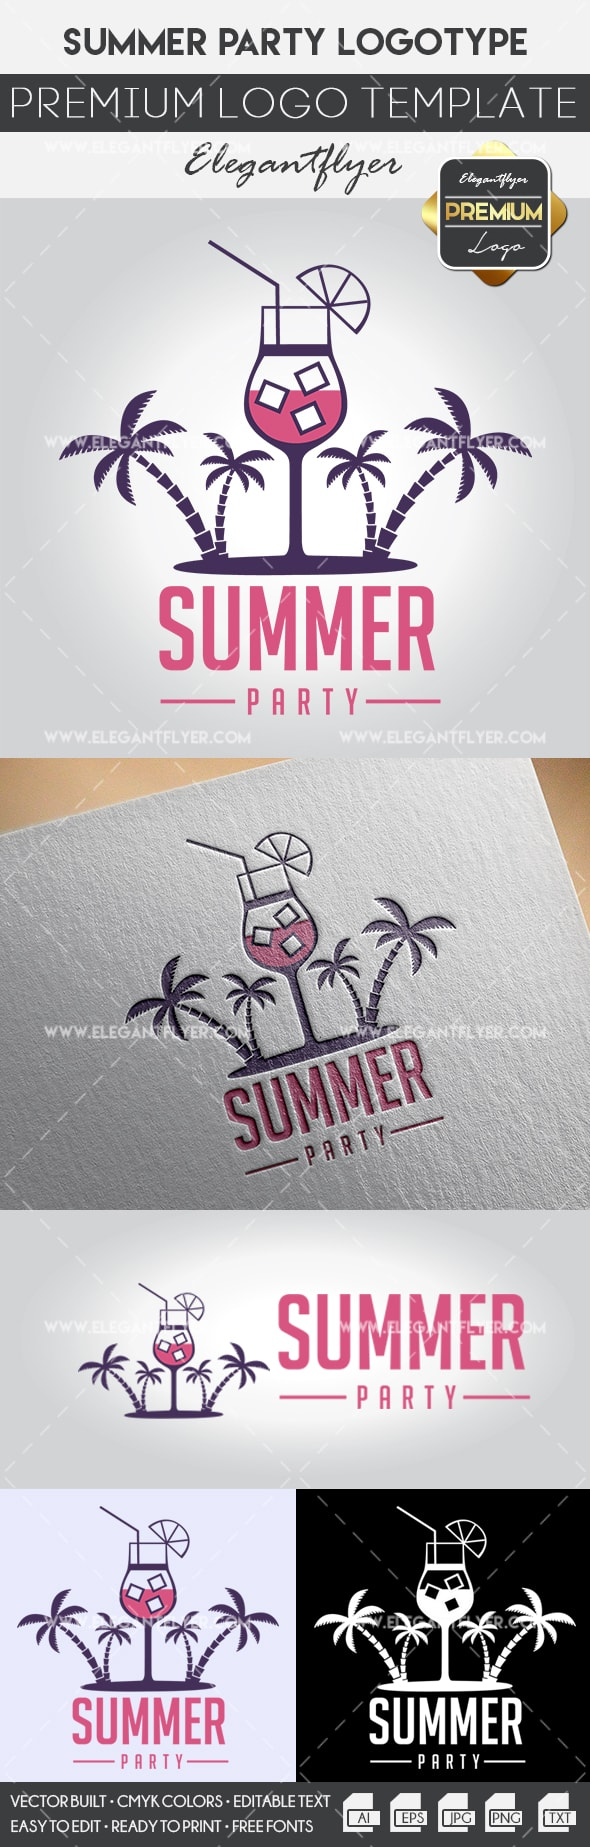 Summer Party – Premium Logo Template